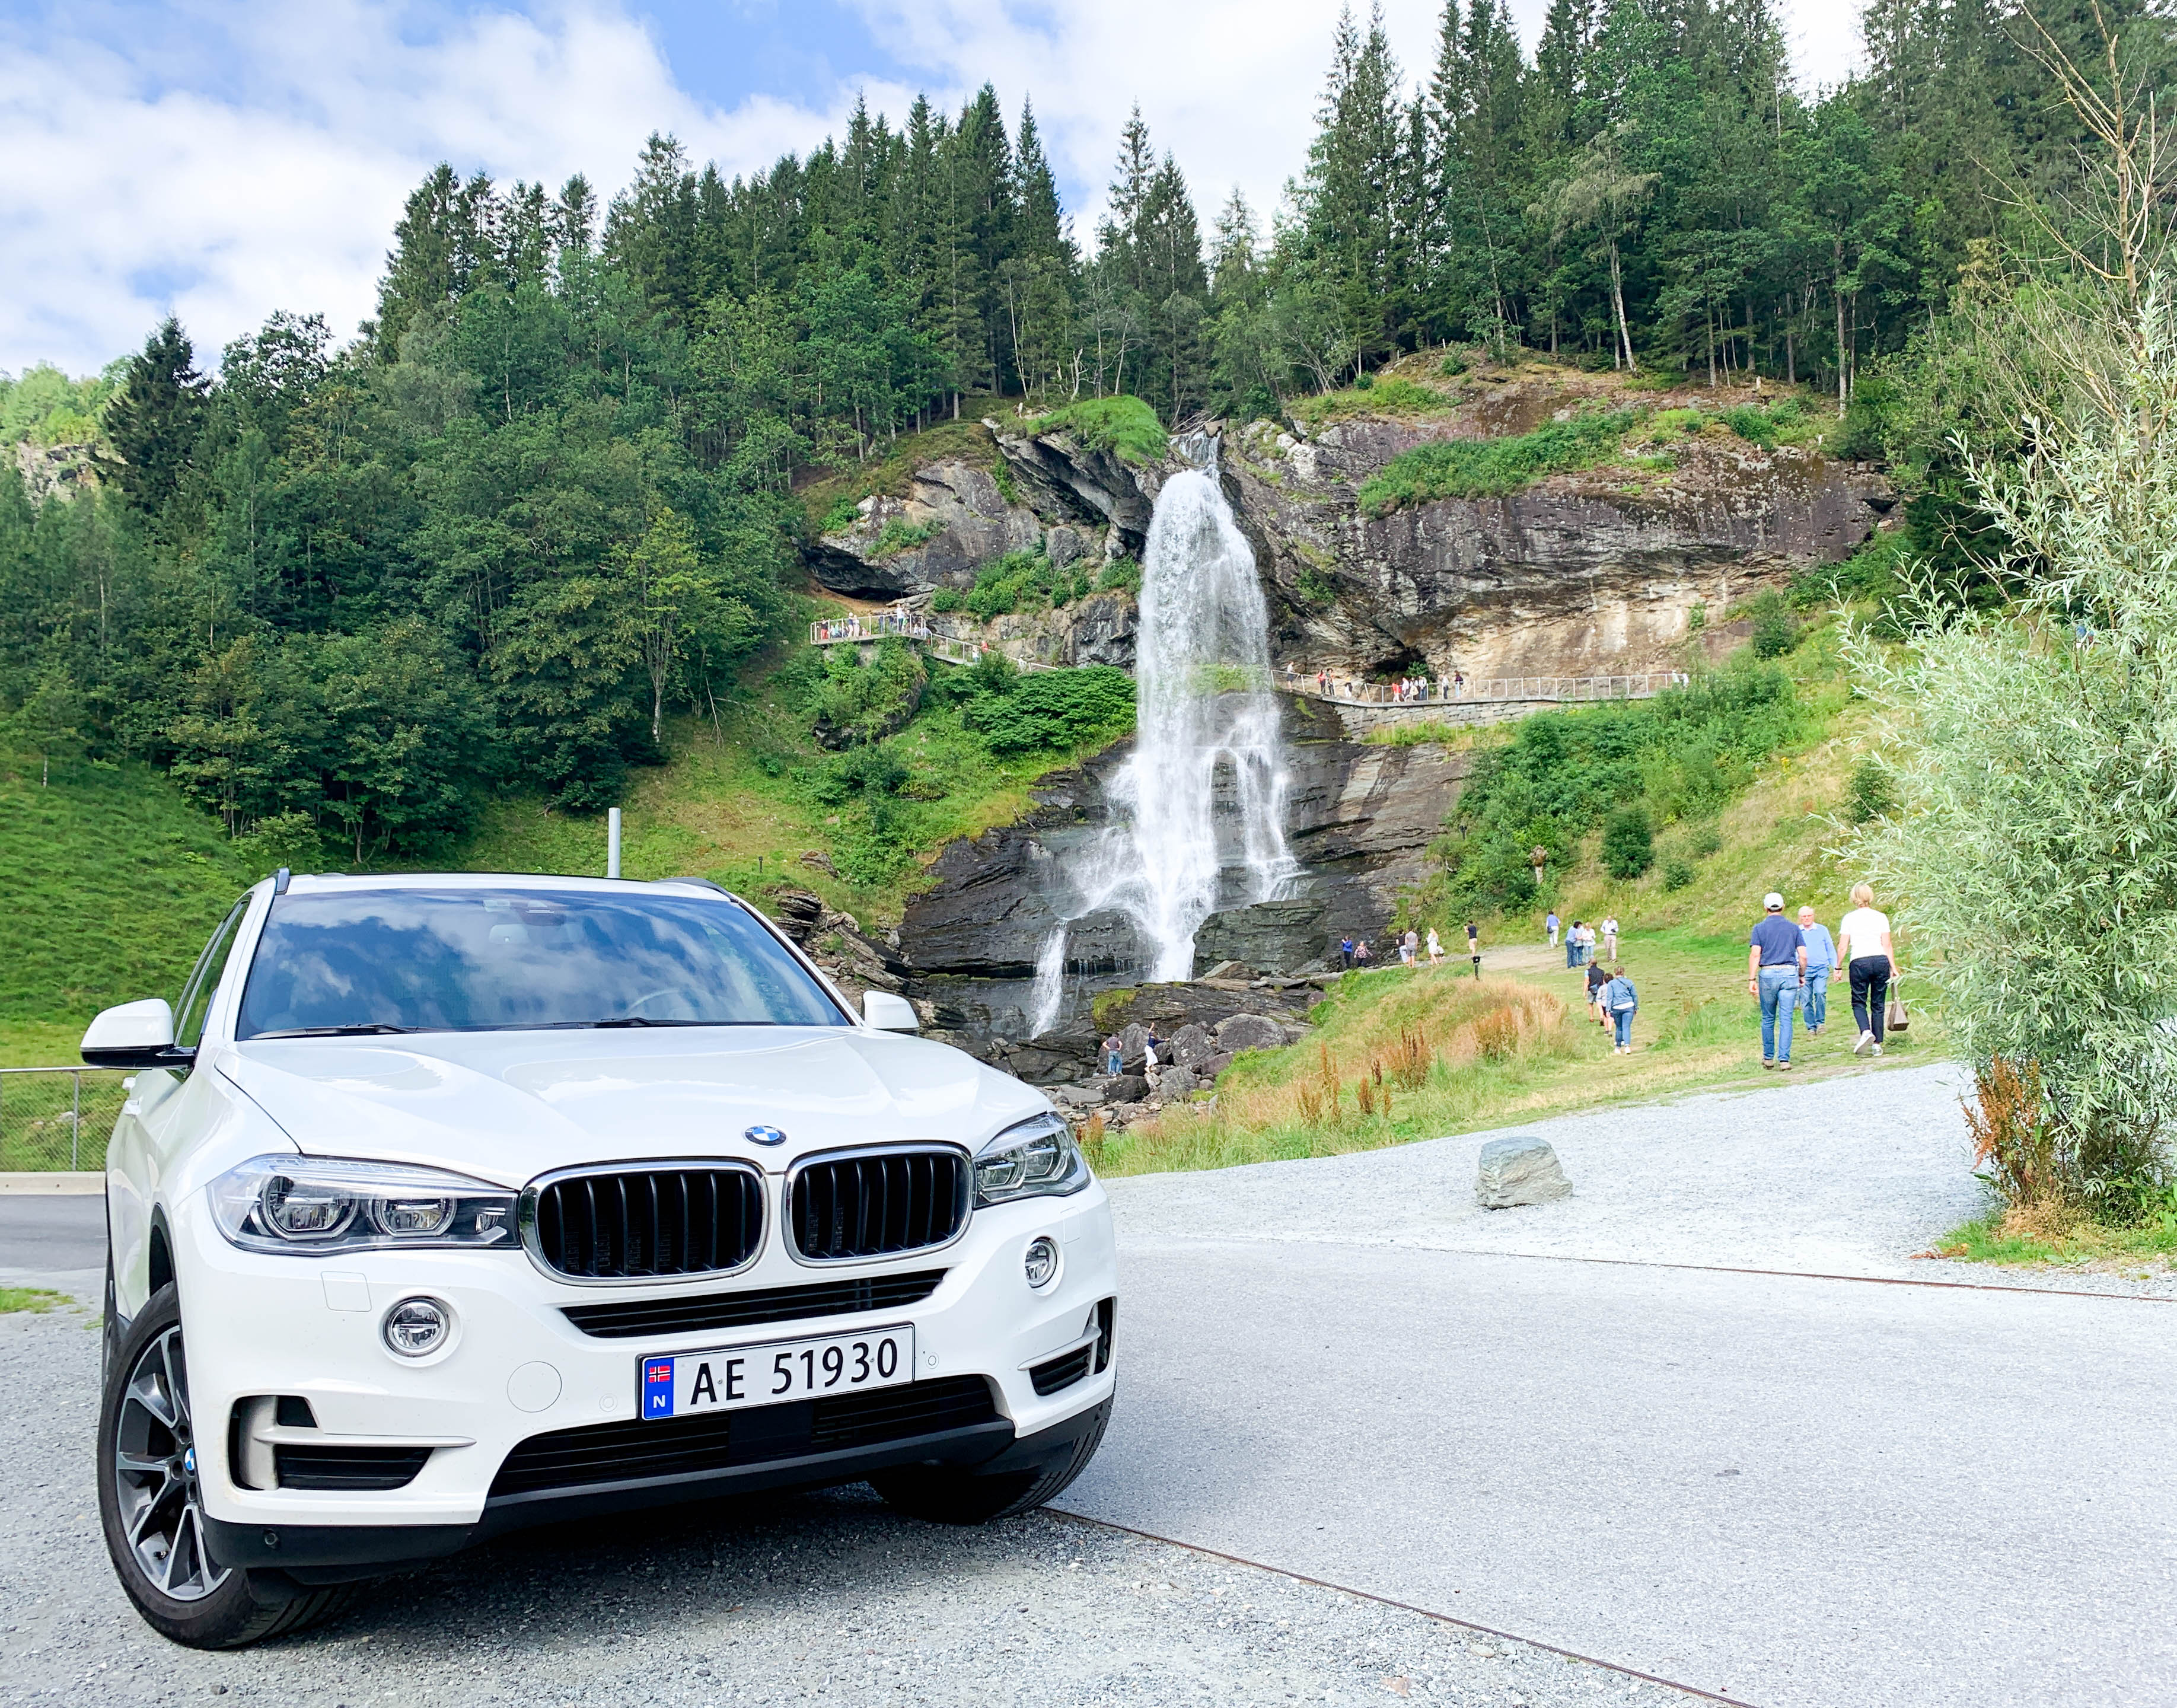 VIP transport to Steinsdalsfossen